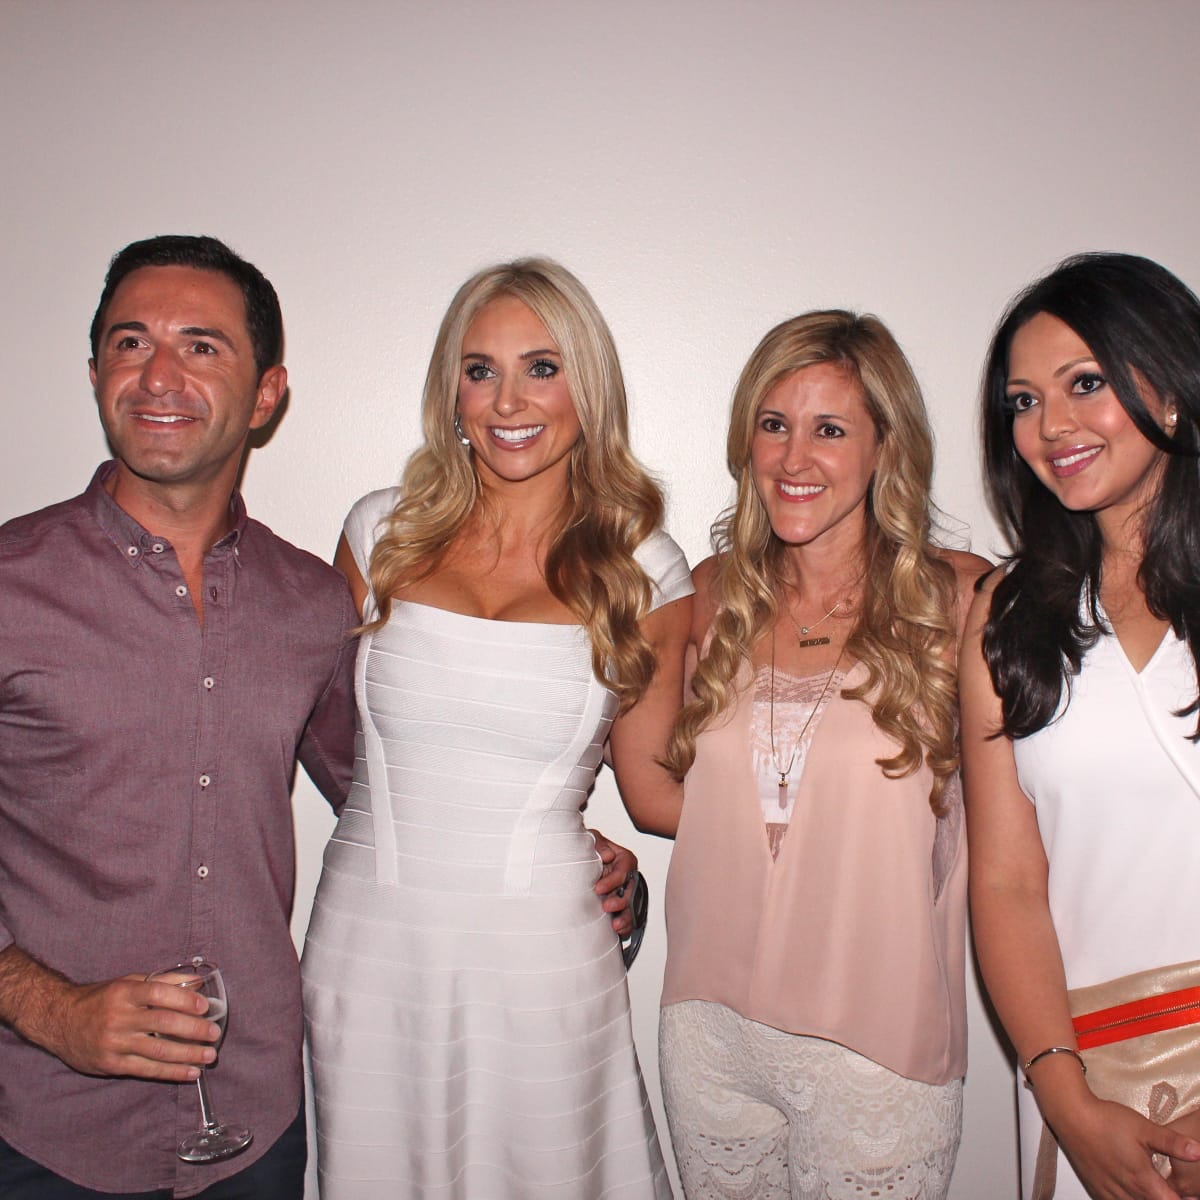 Houston, Chita Johnson engagement party, July 2015, Drew Karedes, Chita Johnson, Courtney Zubowski Haas, Rekha Muddaraj